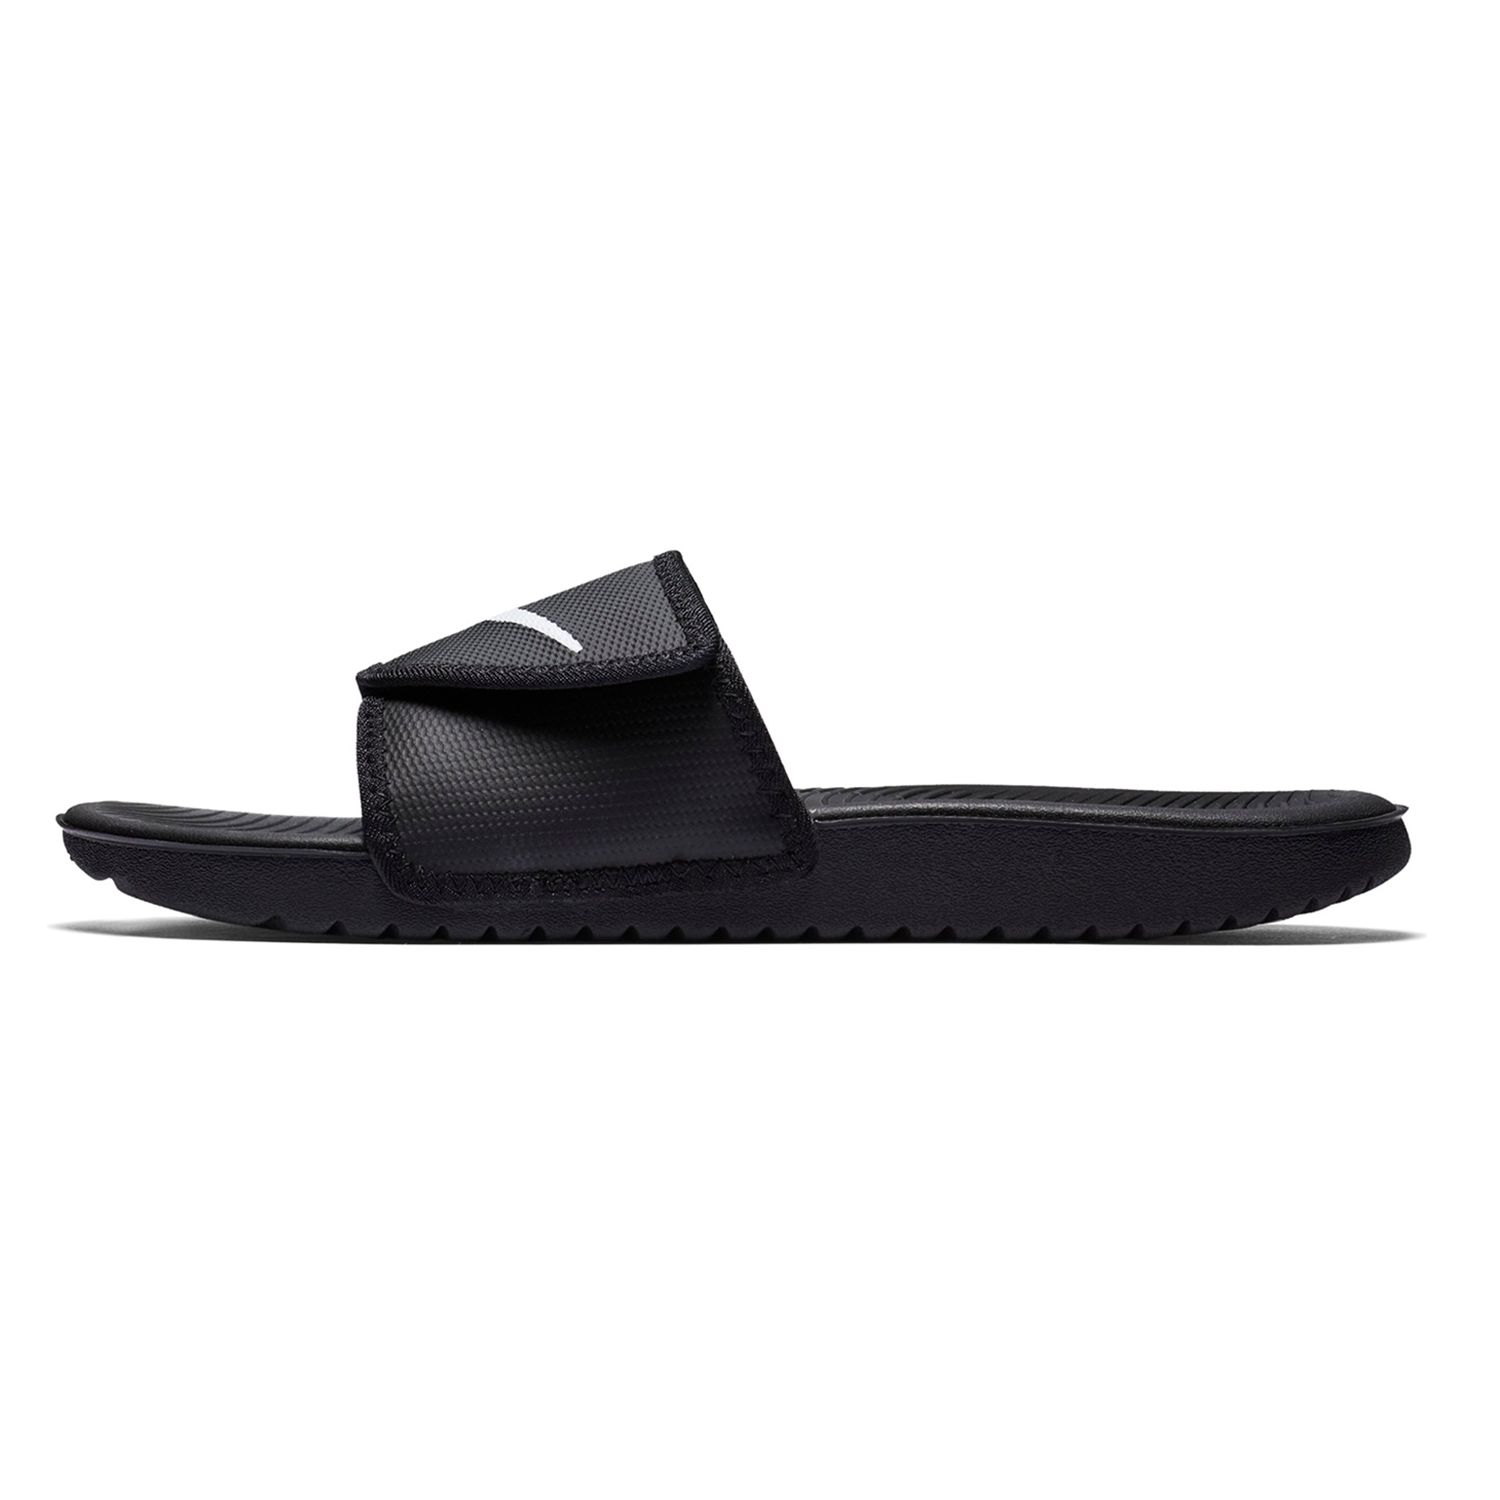 0c09ad7ae657 Nike Sandals for Men